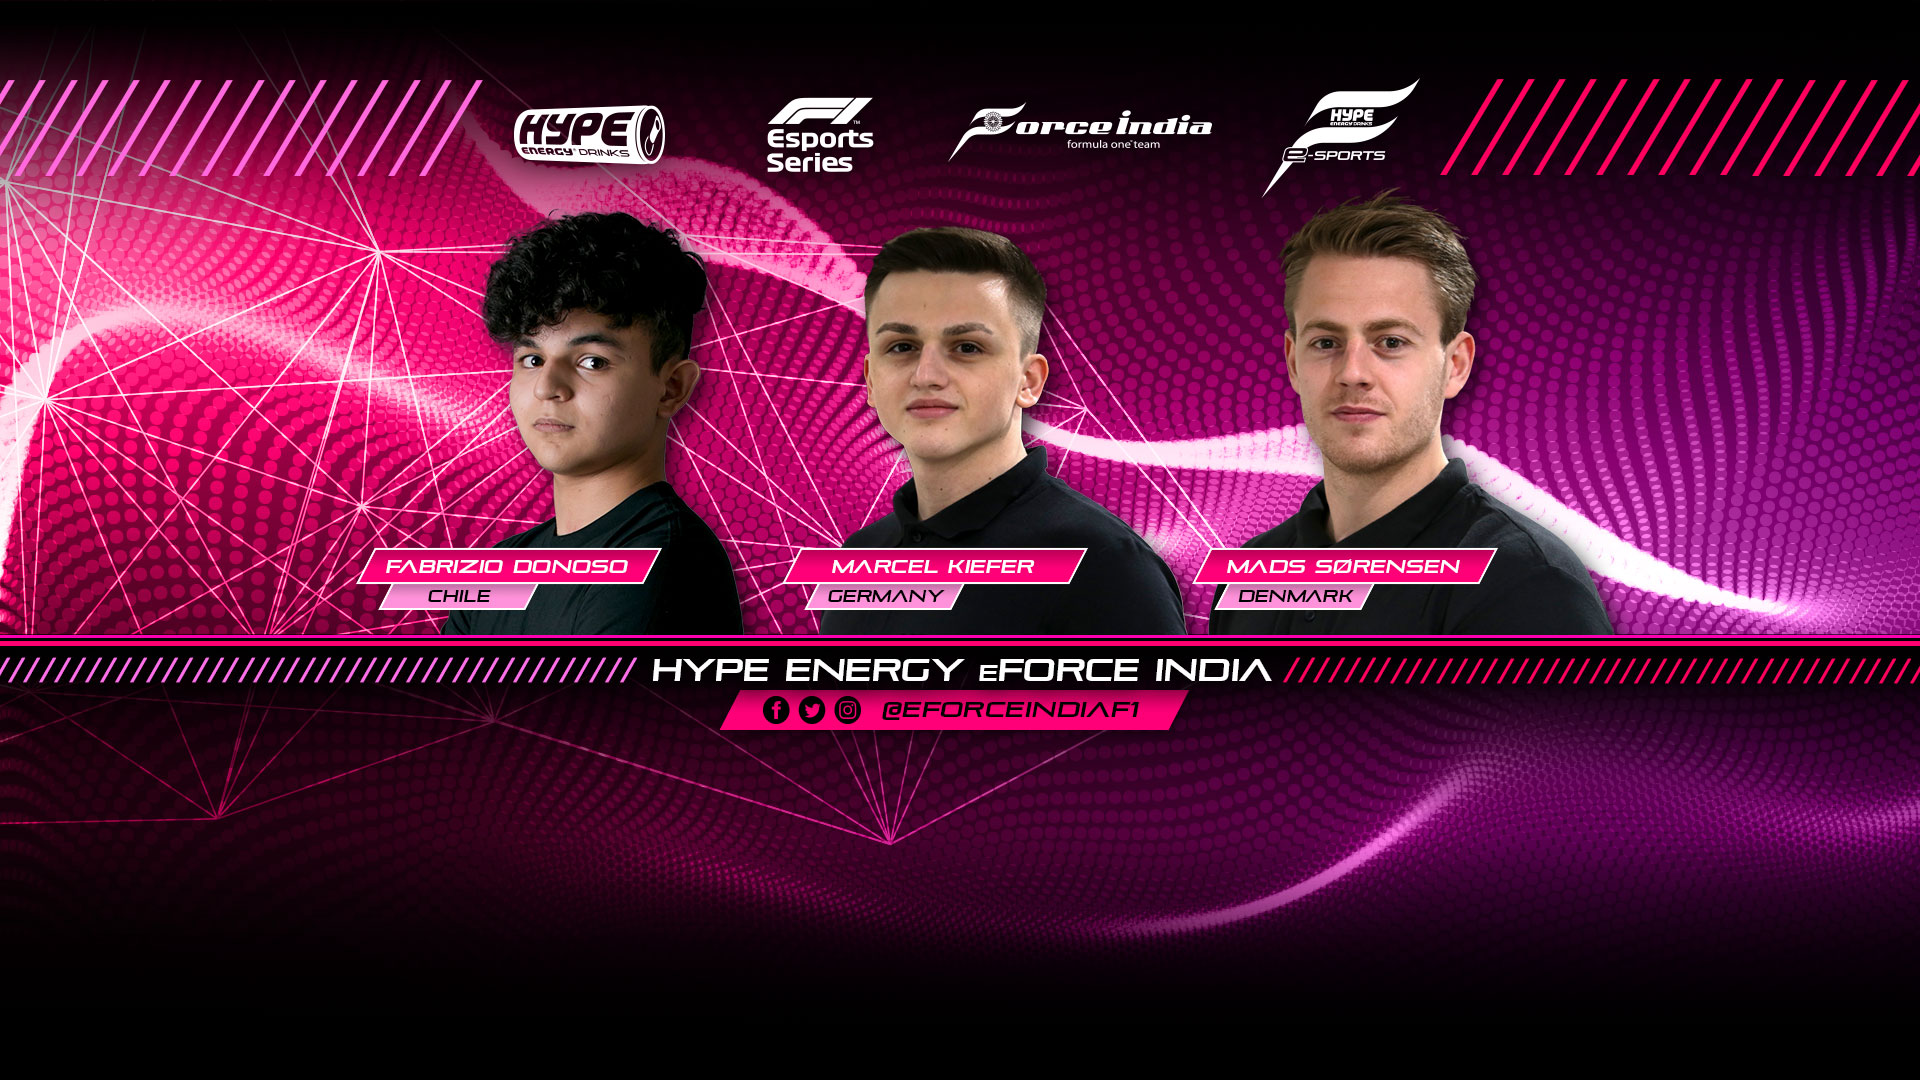 Hype Energy eForce India Driver Lineup Banner V2